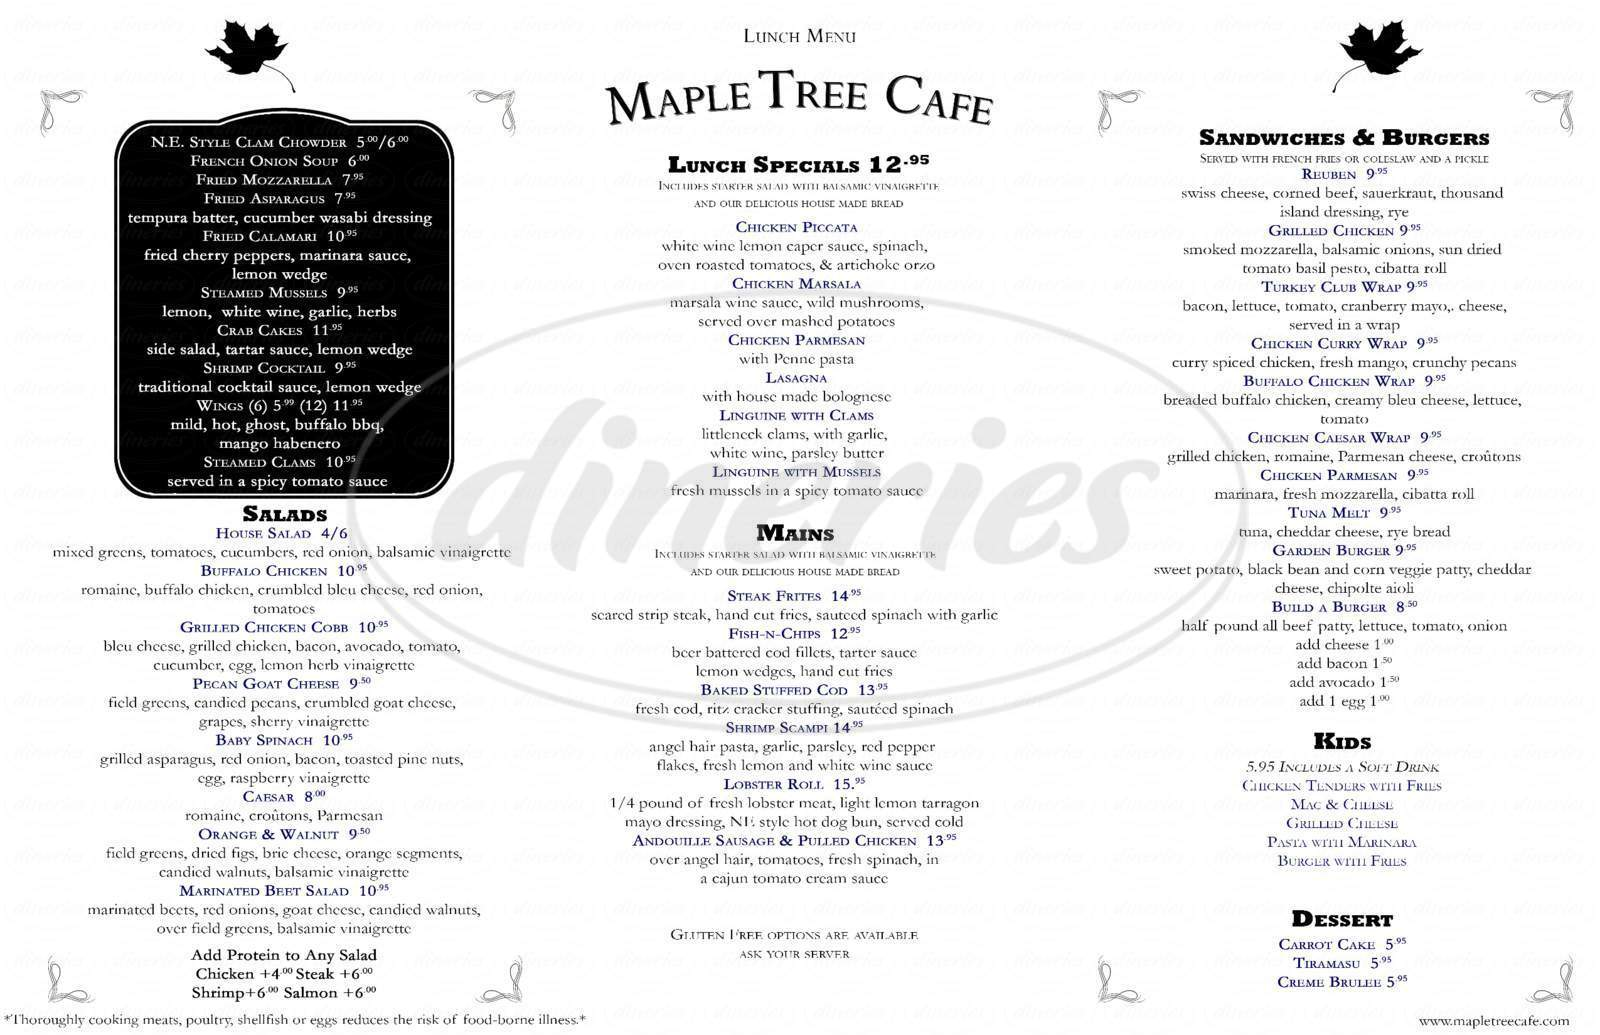 menu for Maple Tree Cafe